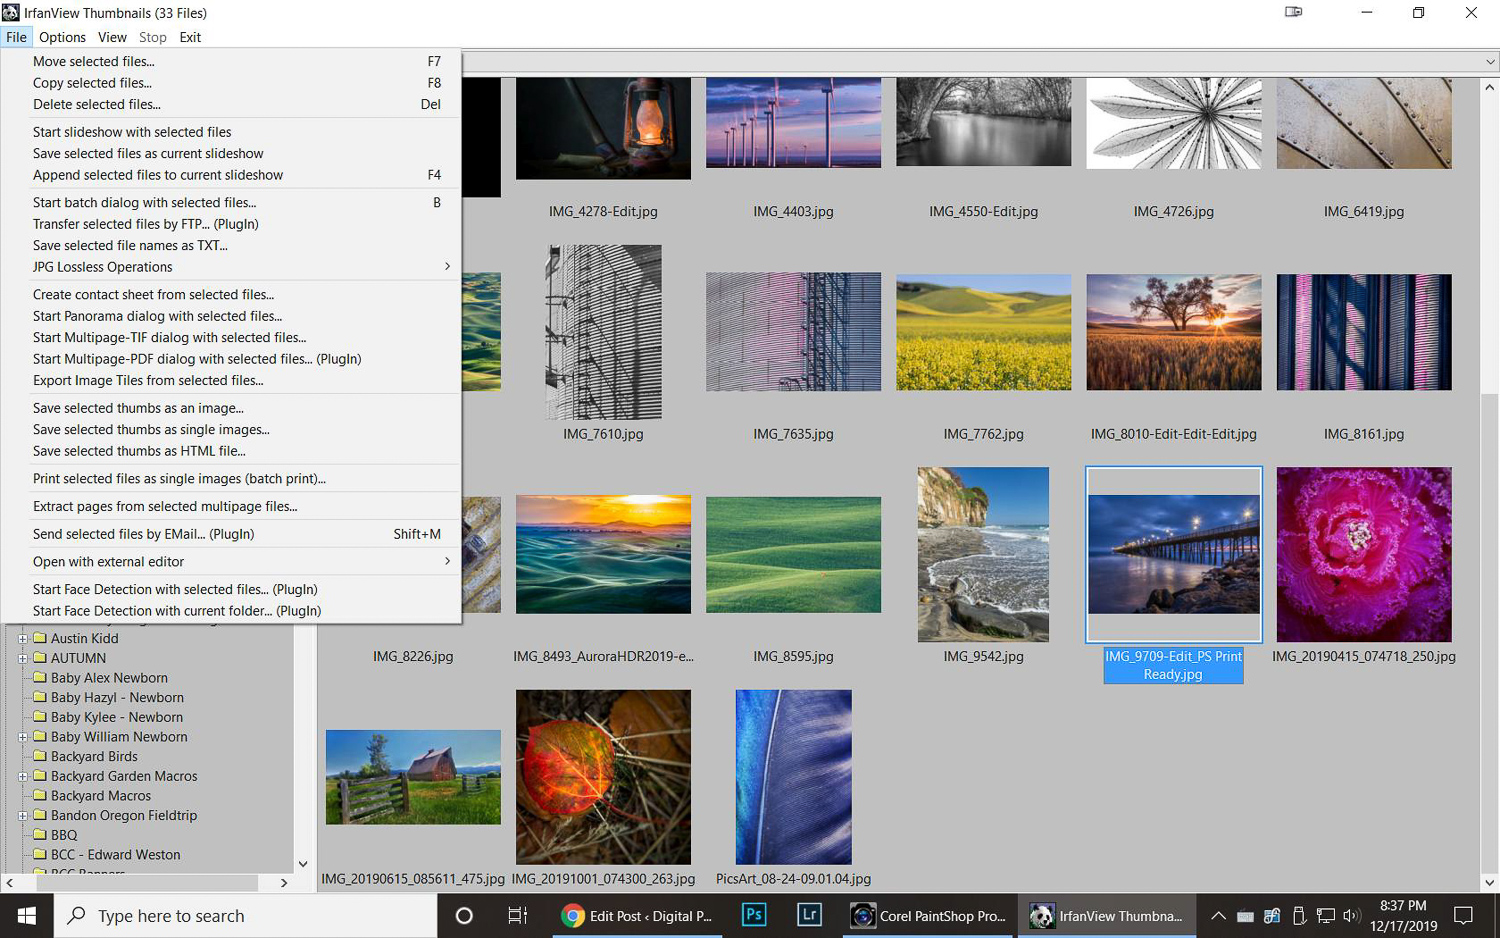 The Thumbnails menu is Irfanview gives you many ways to look at your image files in a folder.